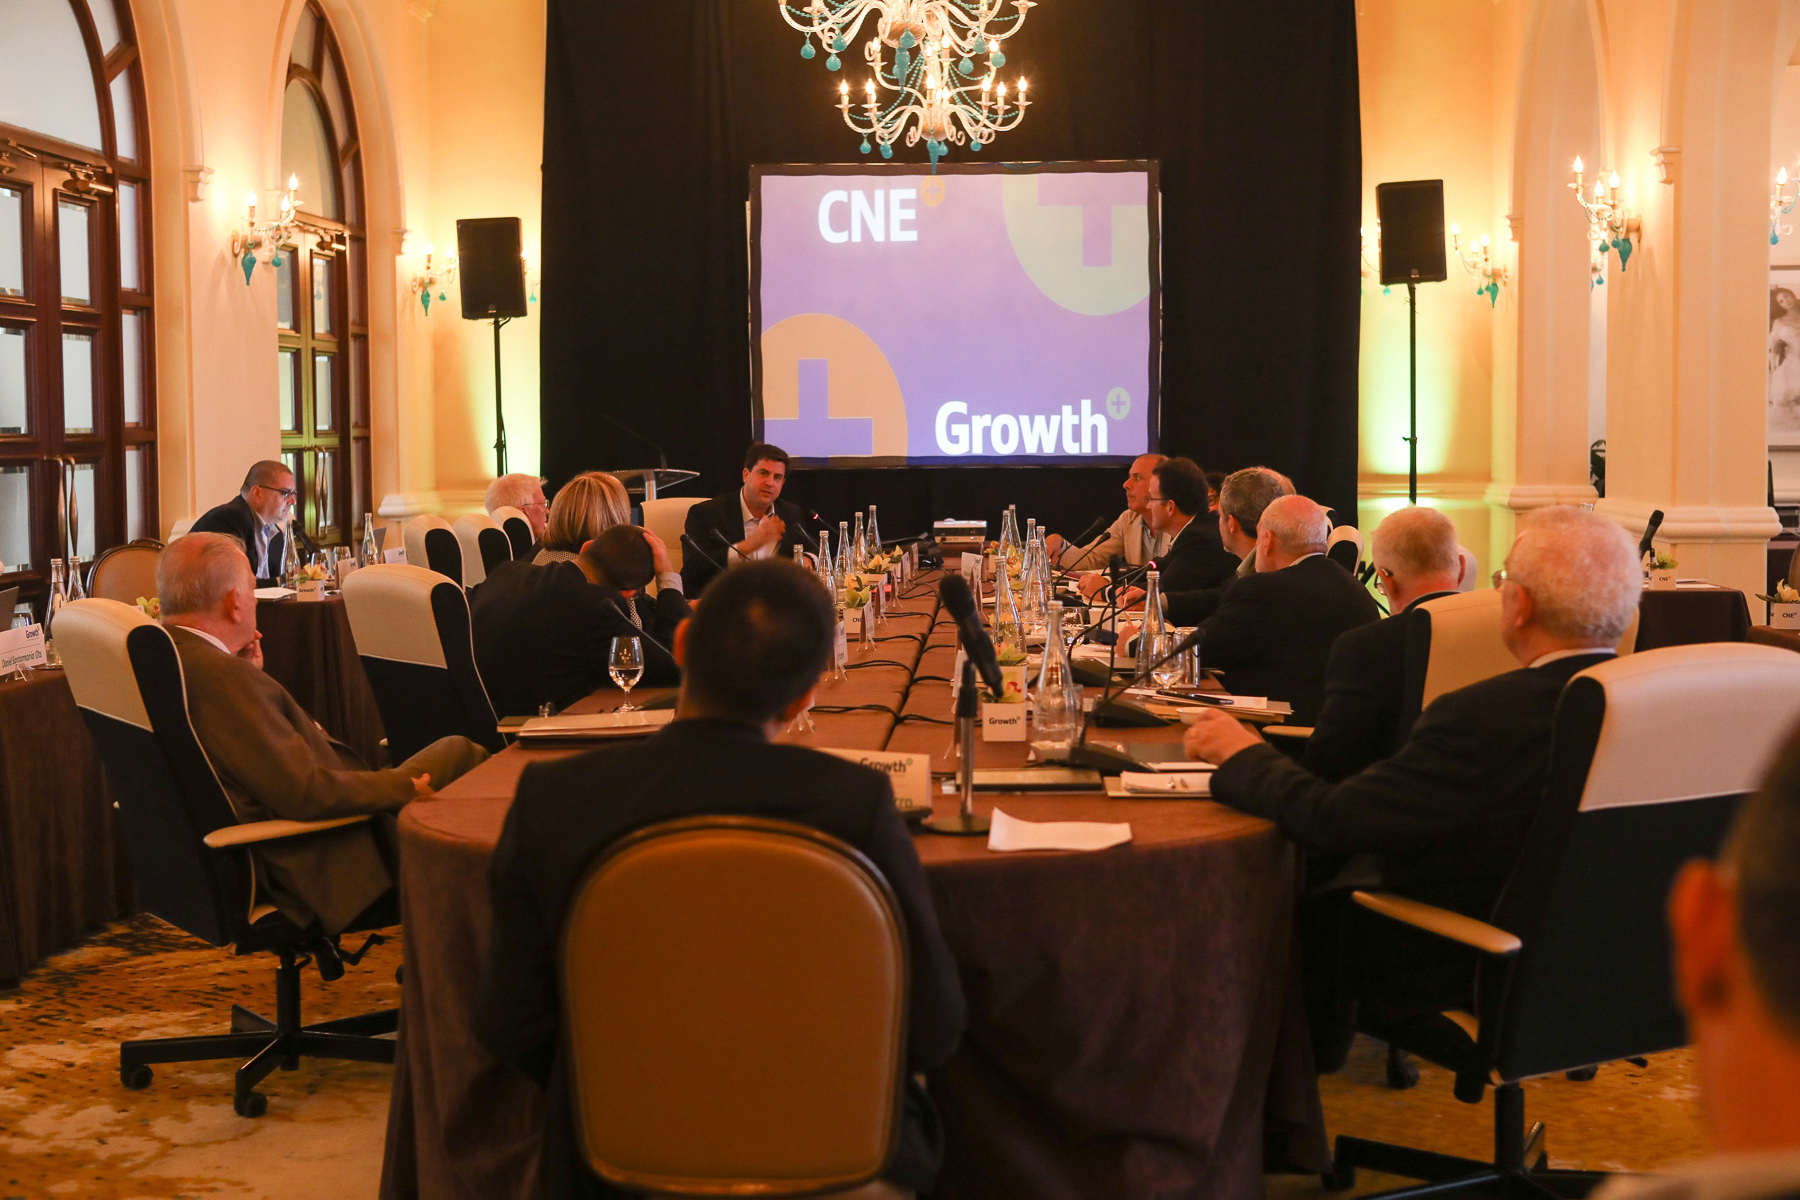 CNE Growth Commission 2017